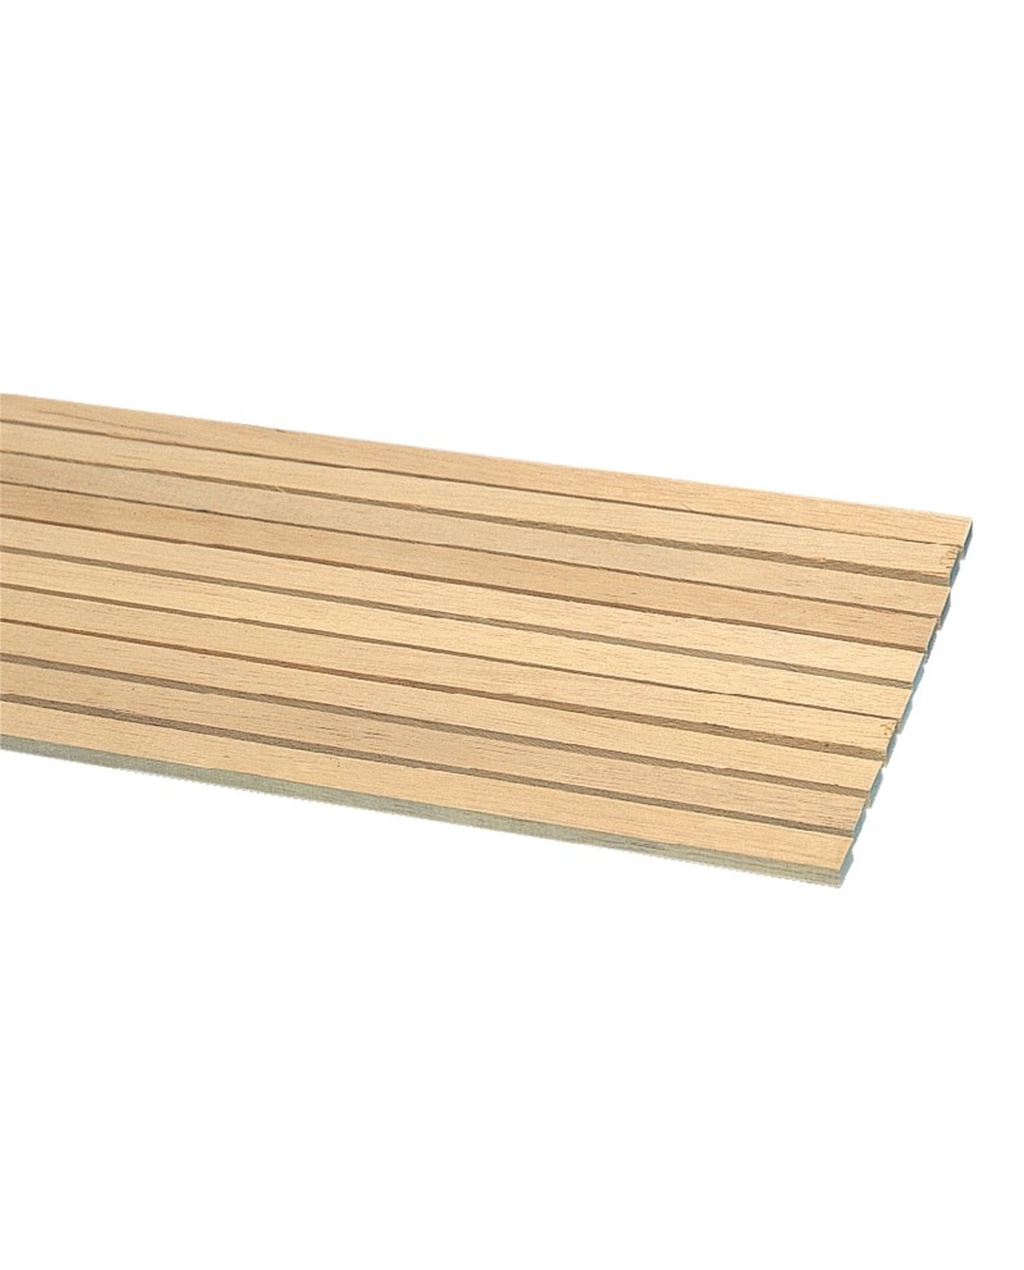 8mm Jelutong Wood Sections